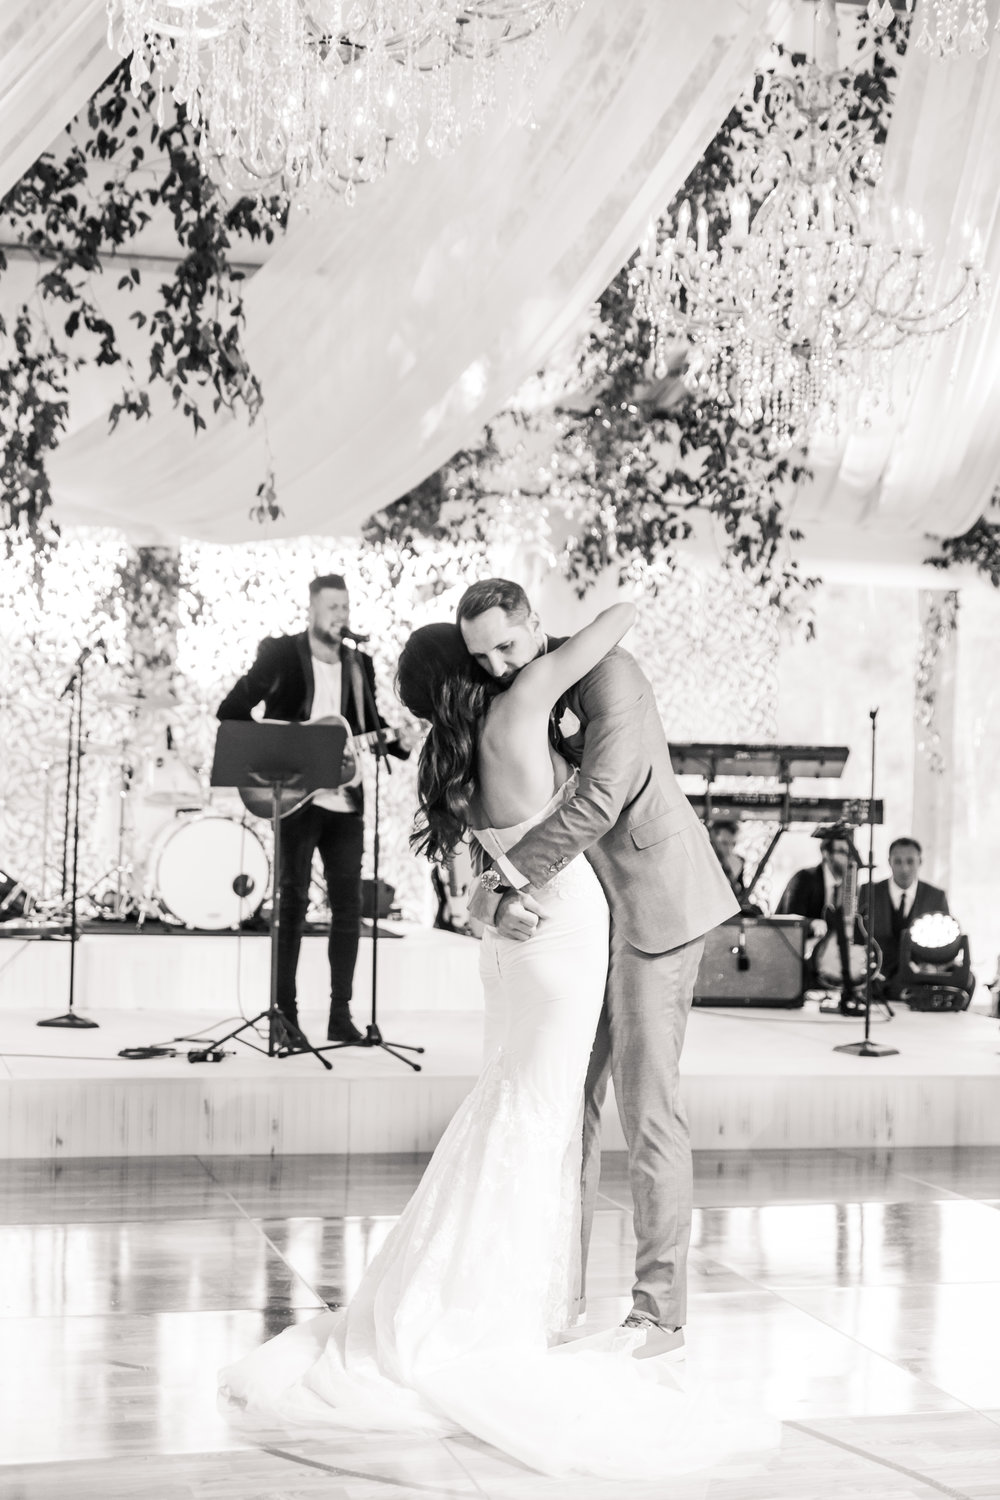 First dance to H.O.L.Y performed by Zach Williams